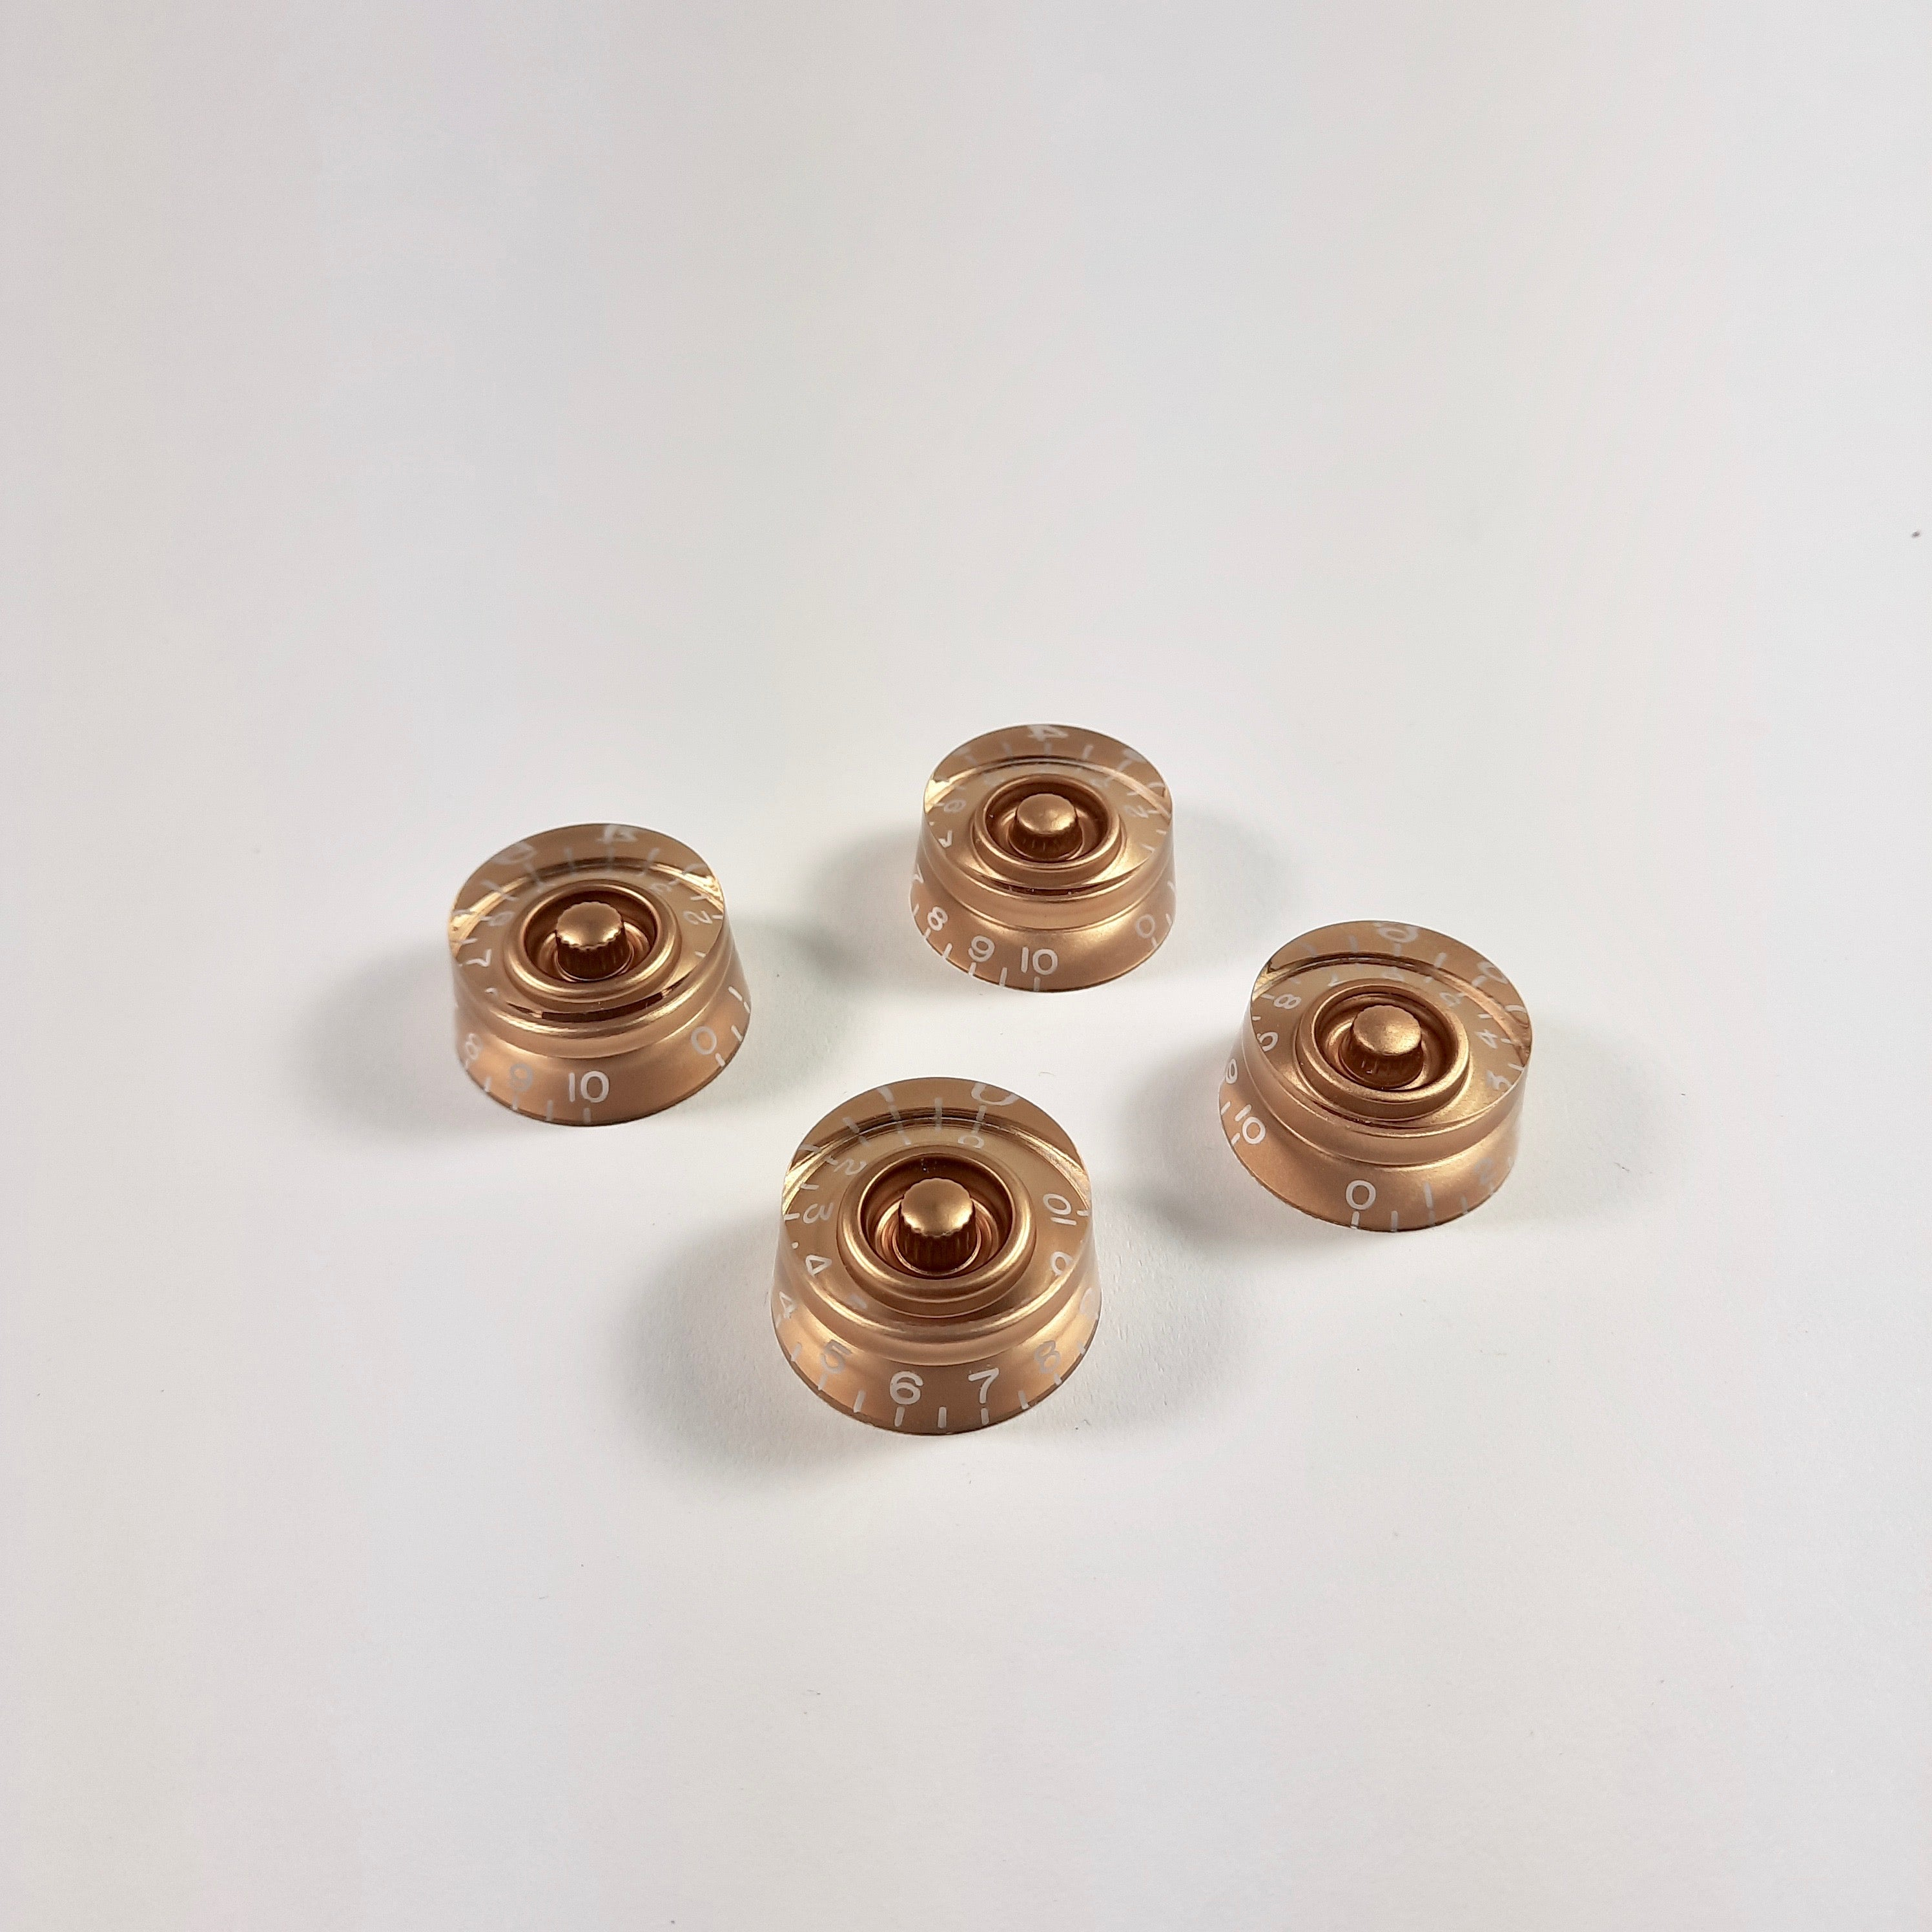 Speed knob set for Gibson, metric, gold